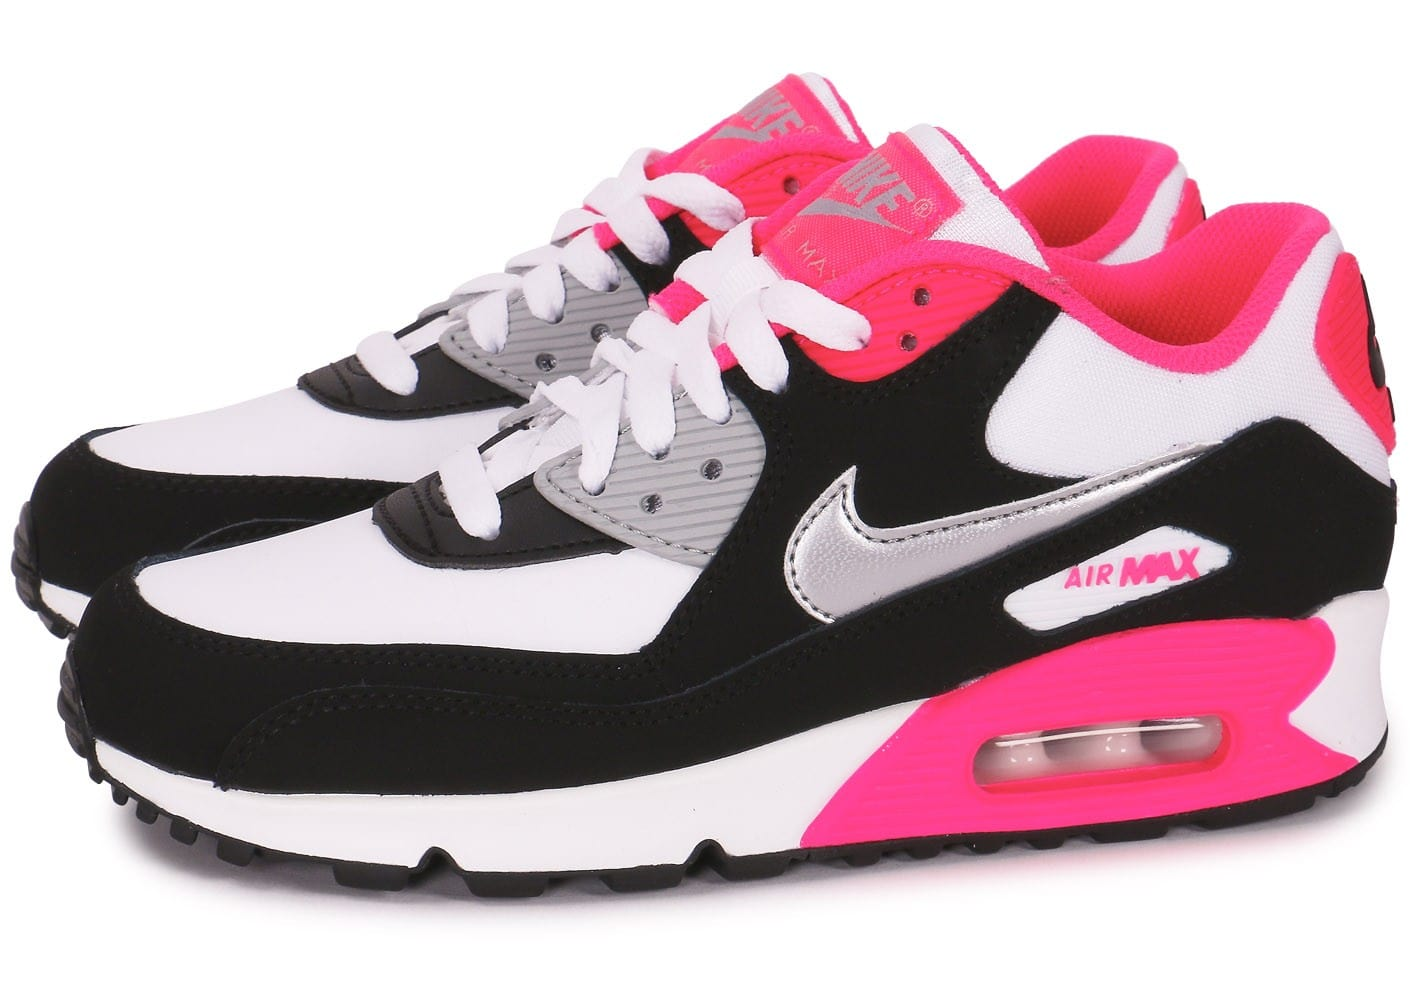 design intemporel 9d509 ddc11 Nike Air Max 90 junior blanc noir rose - Chaussures ...